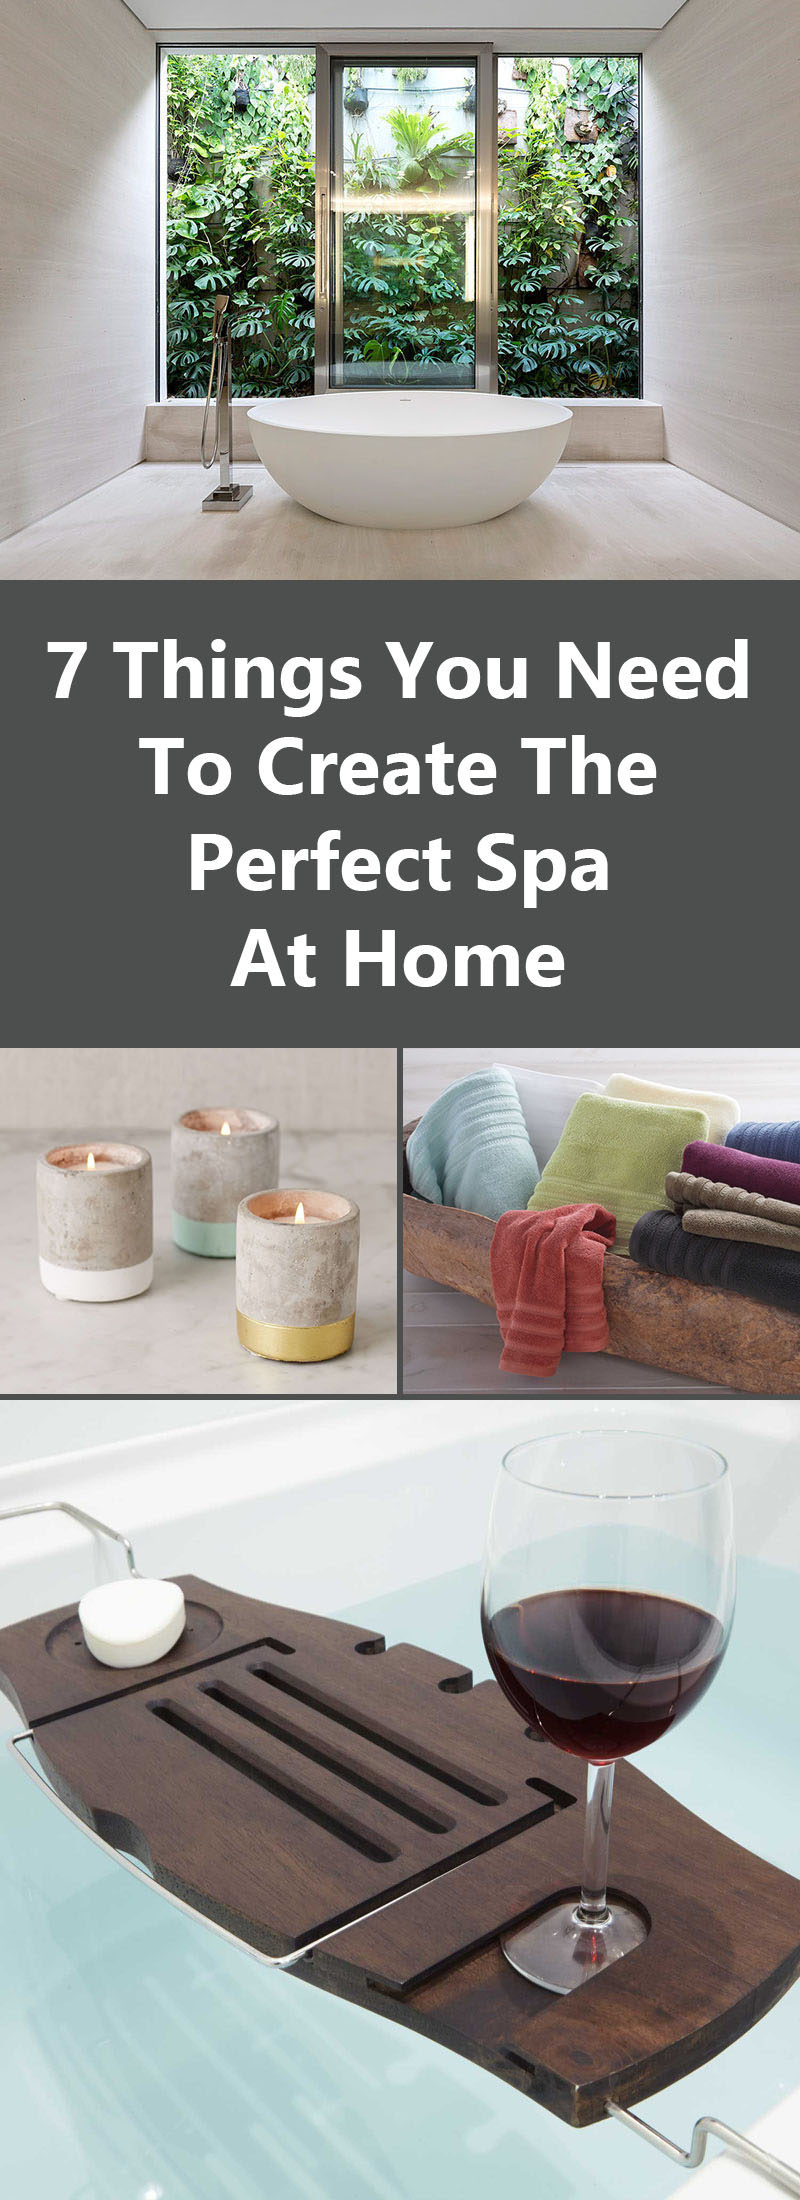 Lækker 7 Things You Need To Create The Perfect Spa At Home WI-03